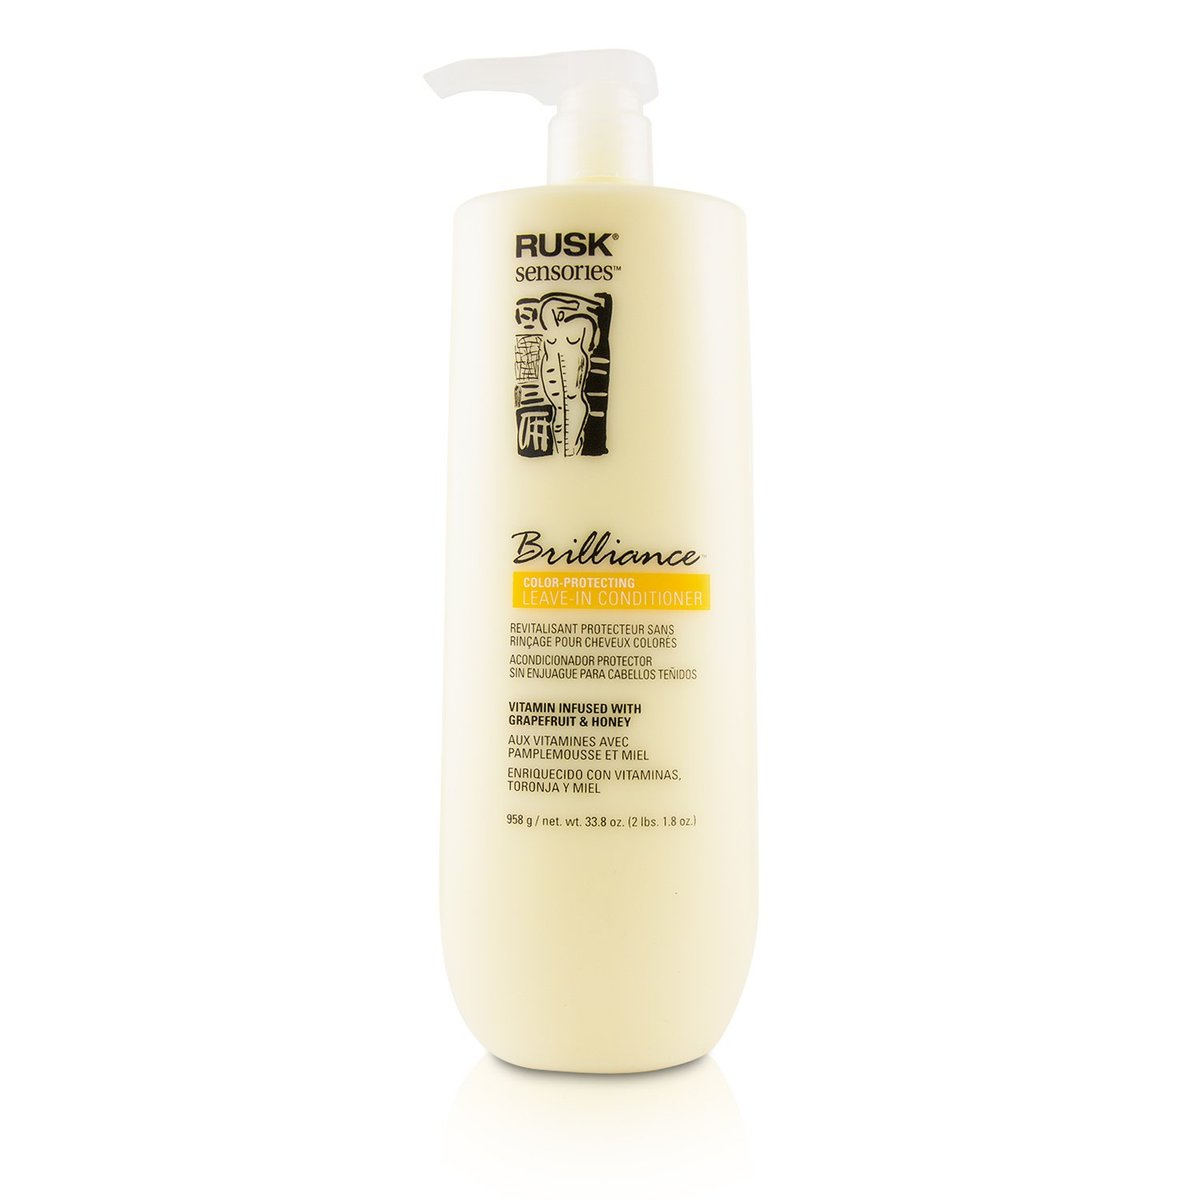 Sensories Brilliance Color-Protecting Leave-In Conditioner (Vitamin Infused with Grapefruit & Honey)